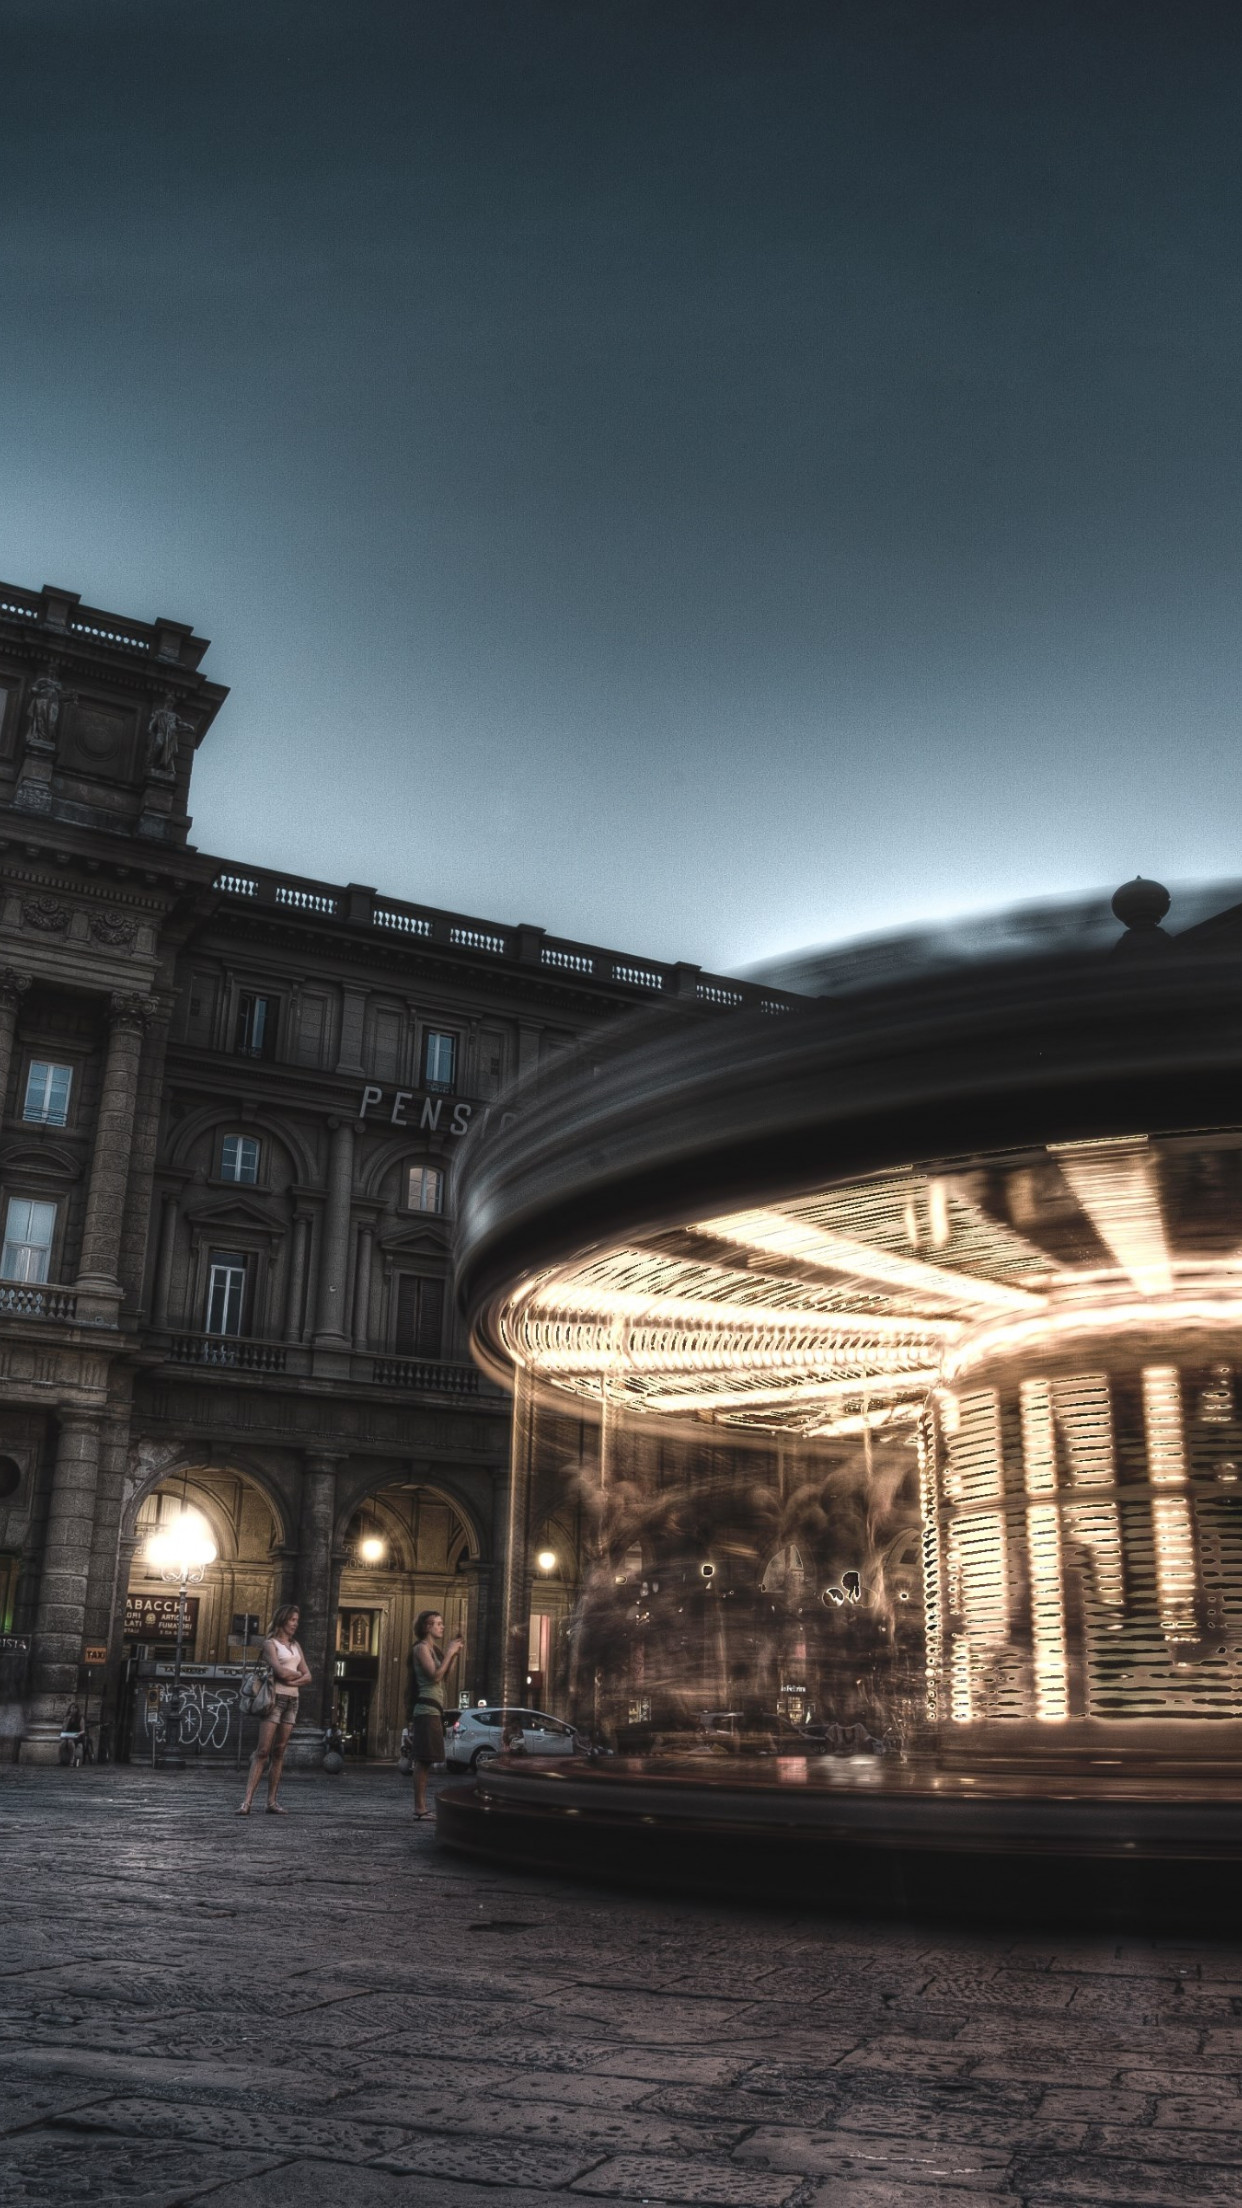 Carousel, people and buildings from Florence | 1242x2208 wallpaper